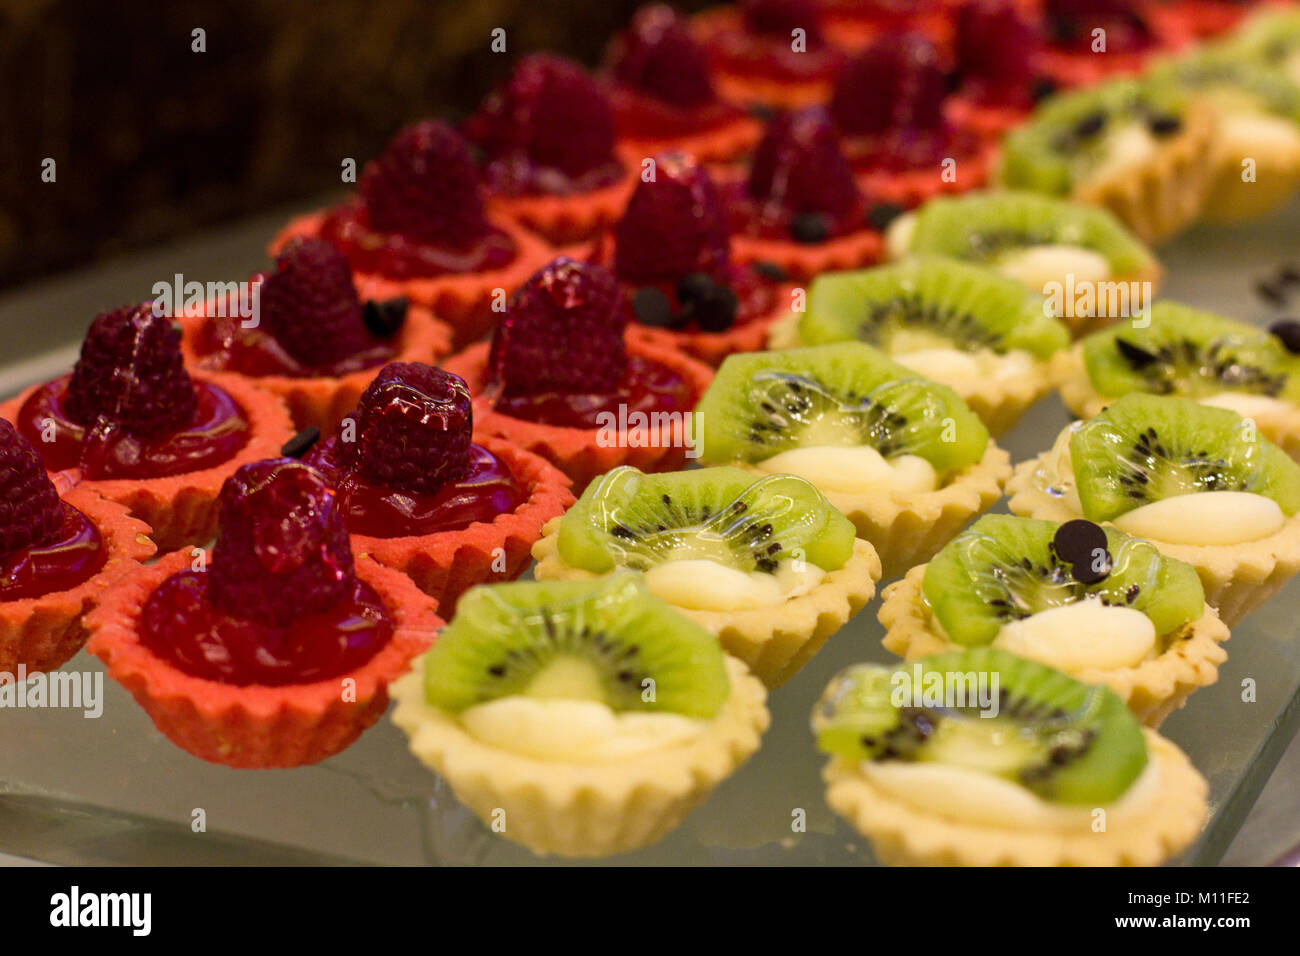 Dessert of raspberry and kiwi with cream and jelly in the crisp tartlets - Stock Image